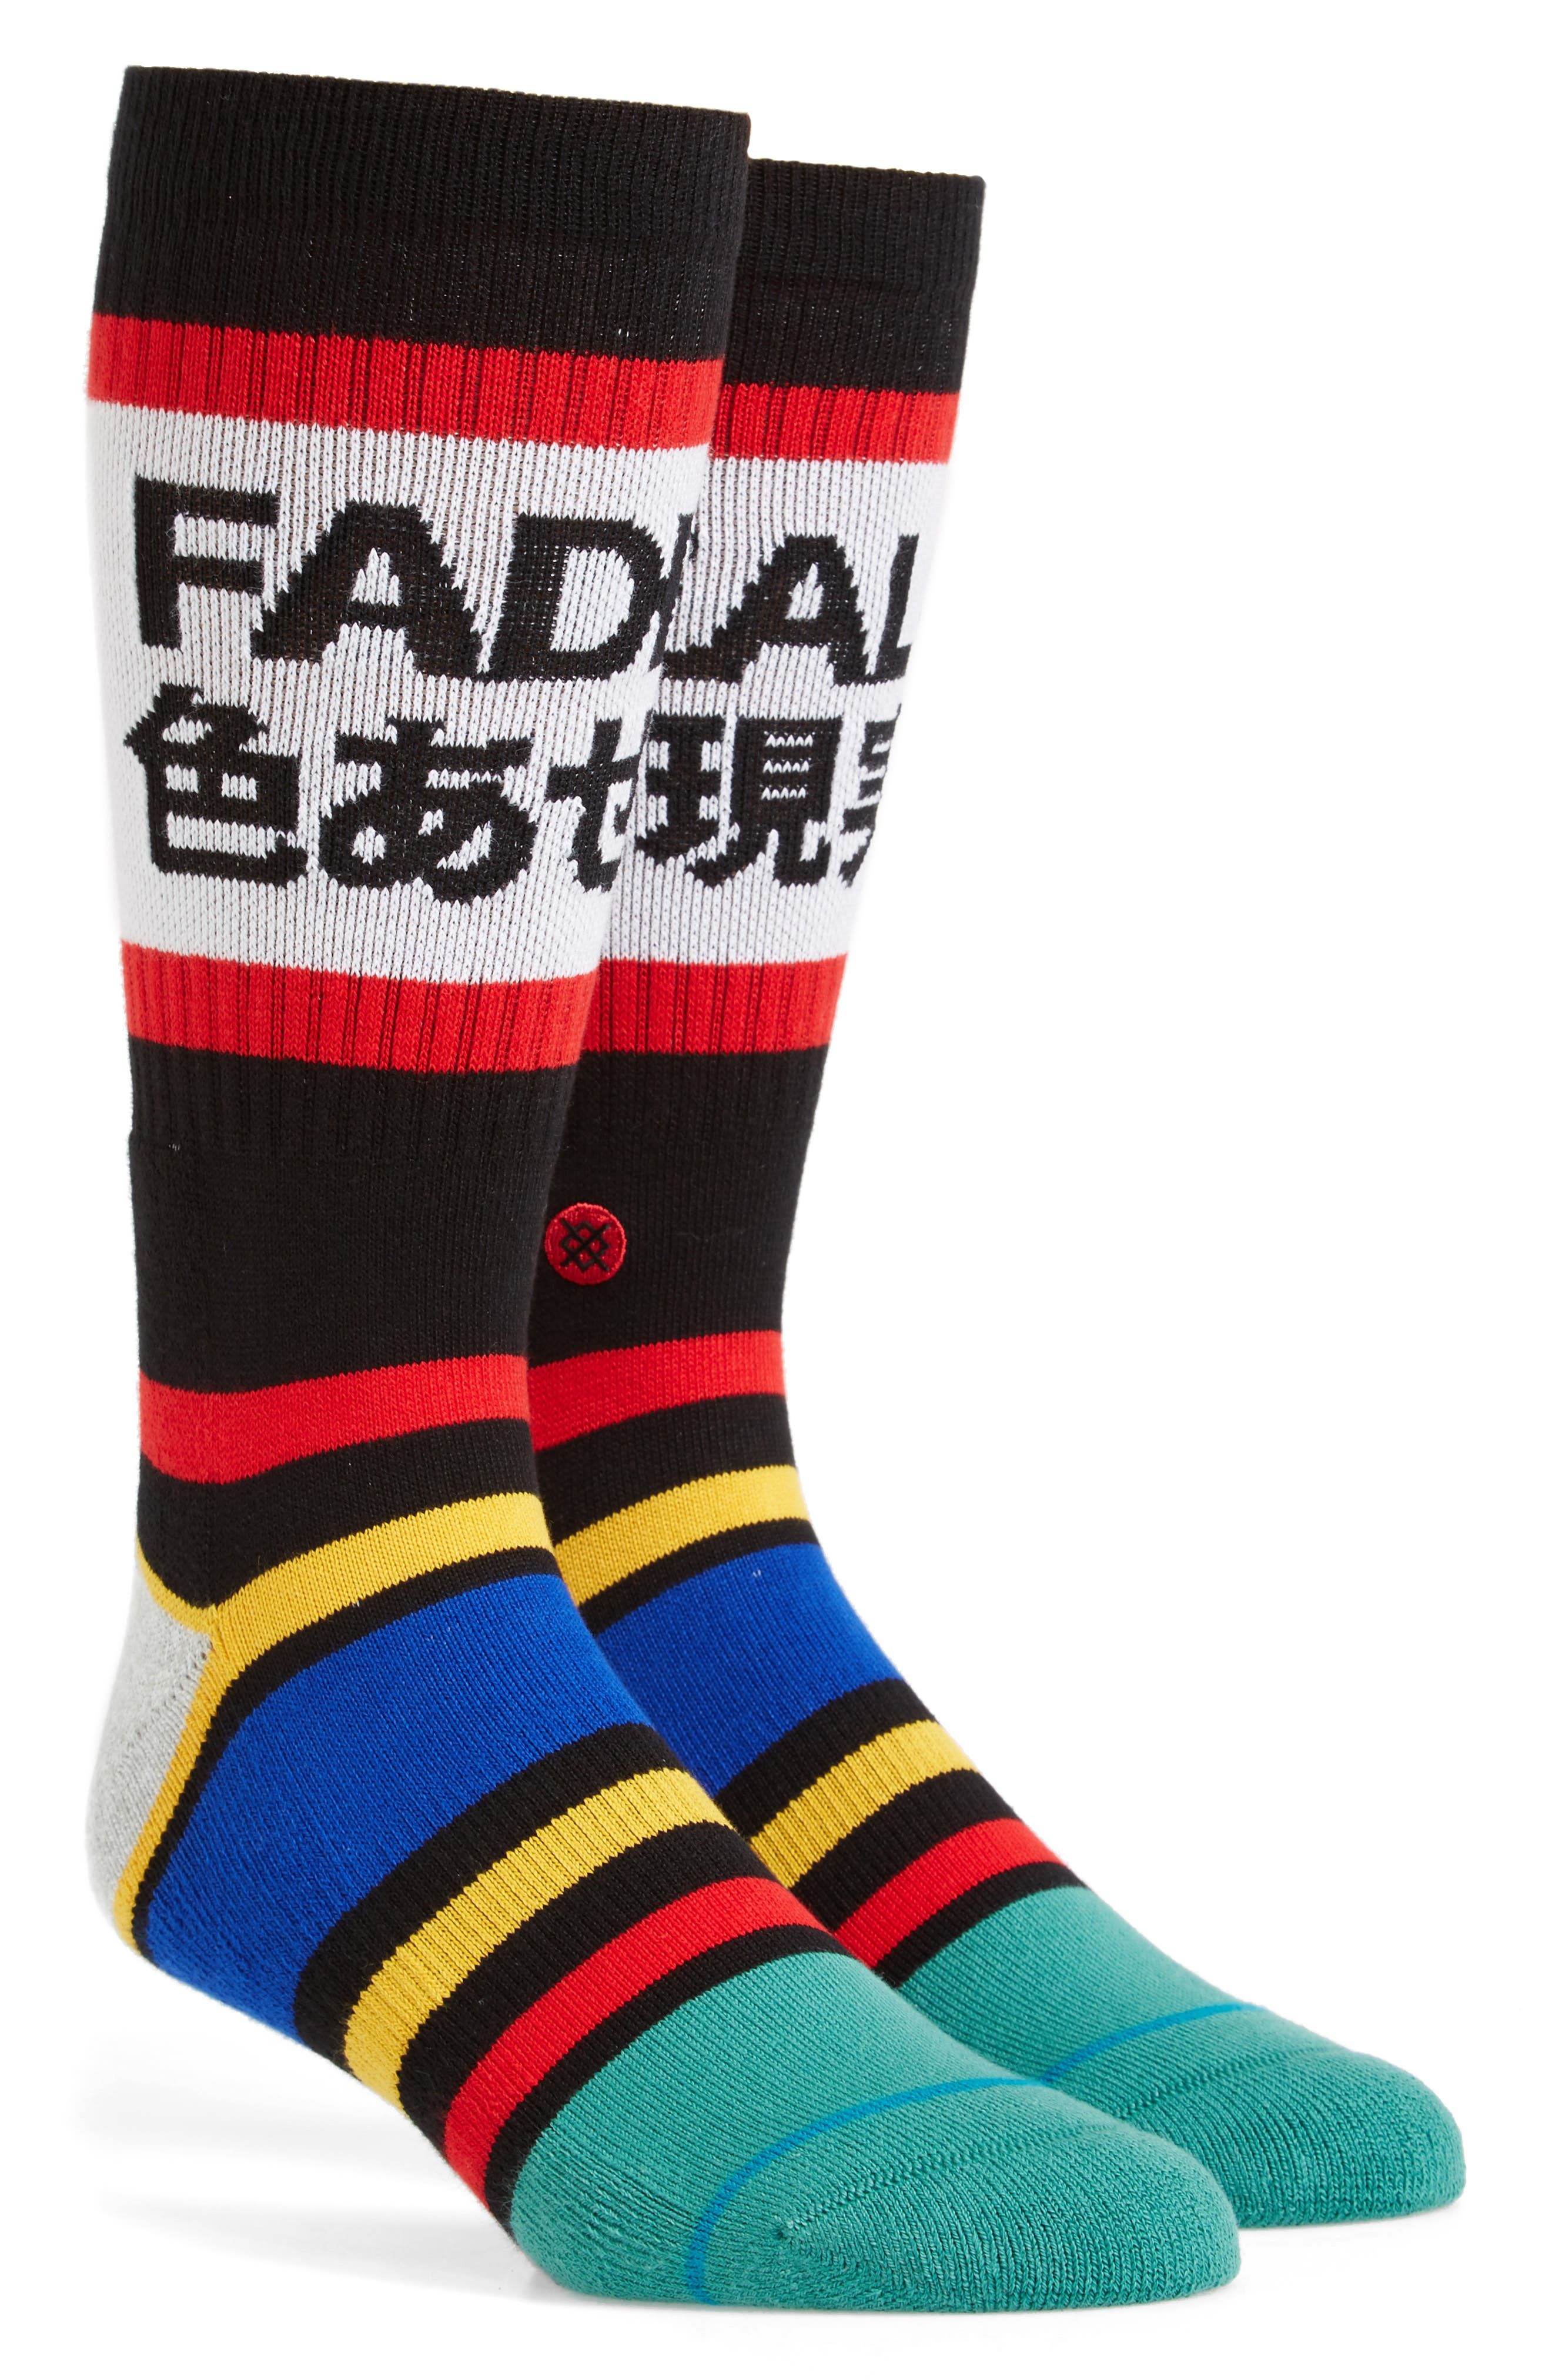 Fade Out Crew Socks,                             Main thumbnail 1, color,                             Multi